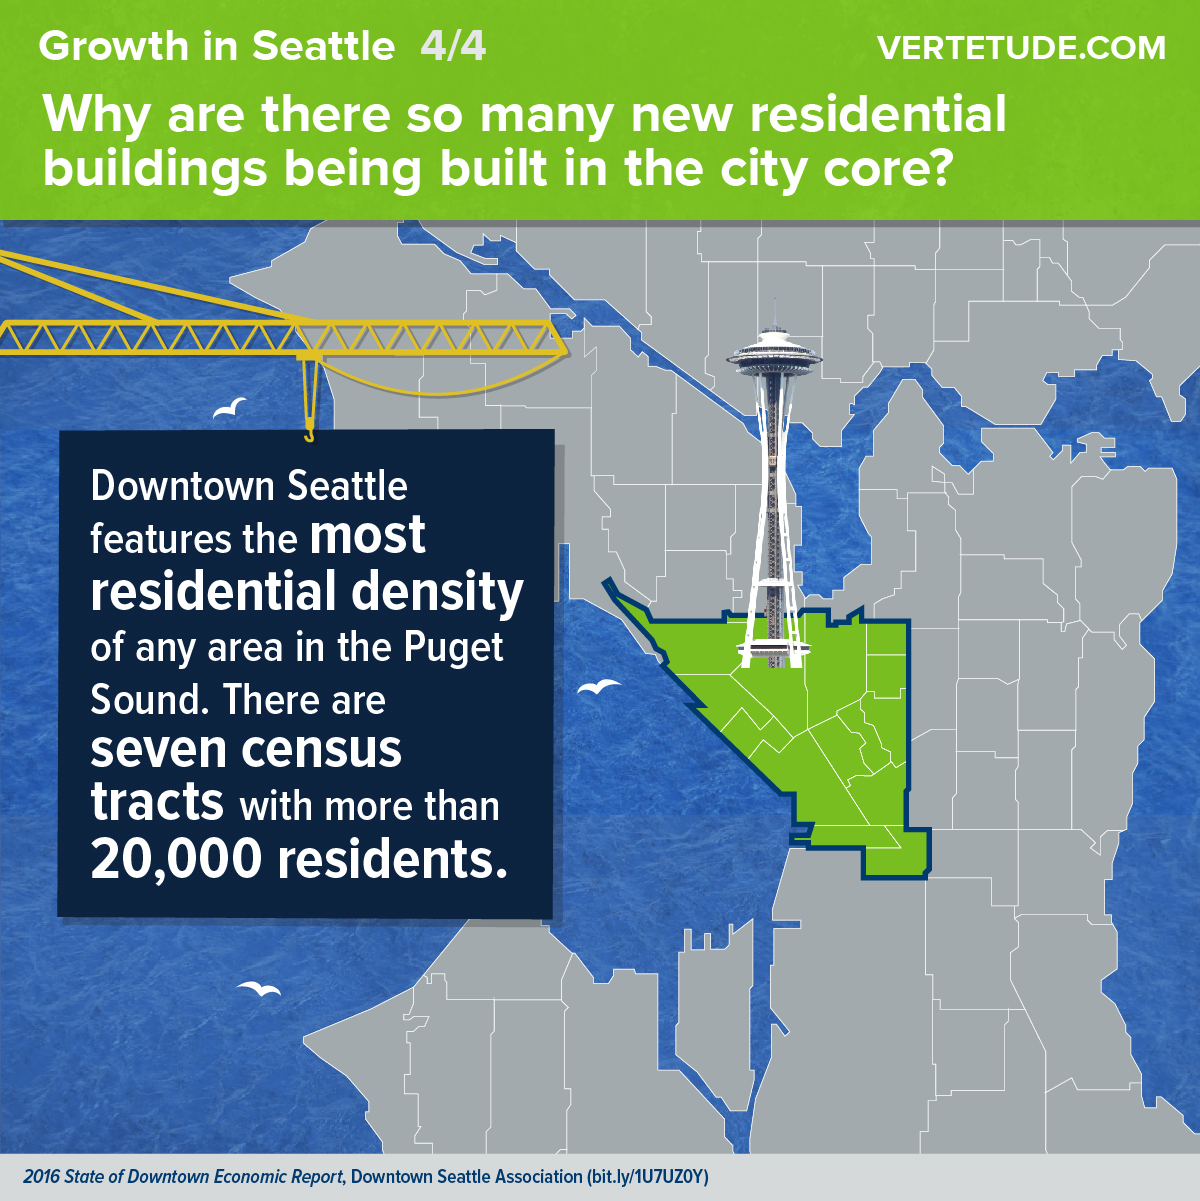 Infographic of growth in downtown Seattle, residential density in Puget Sound